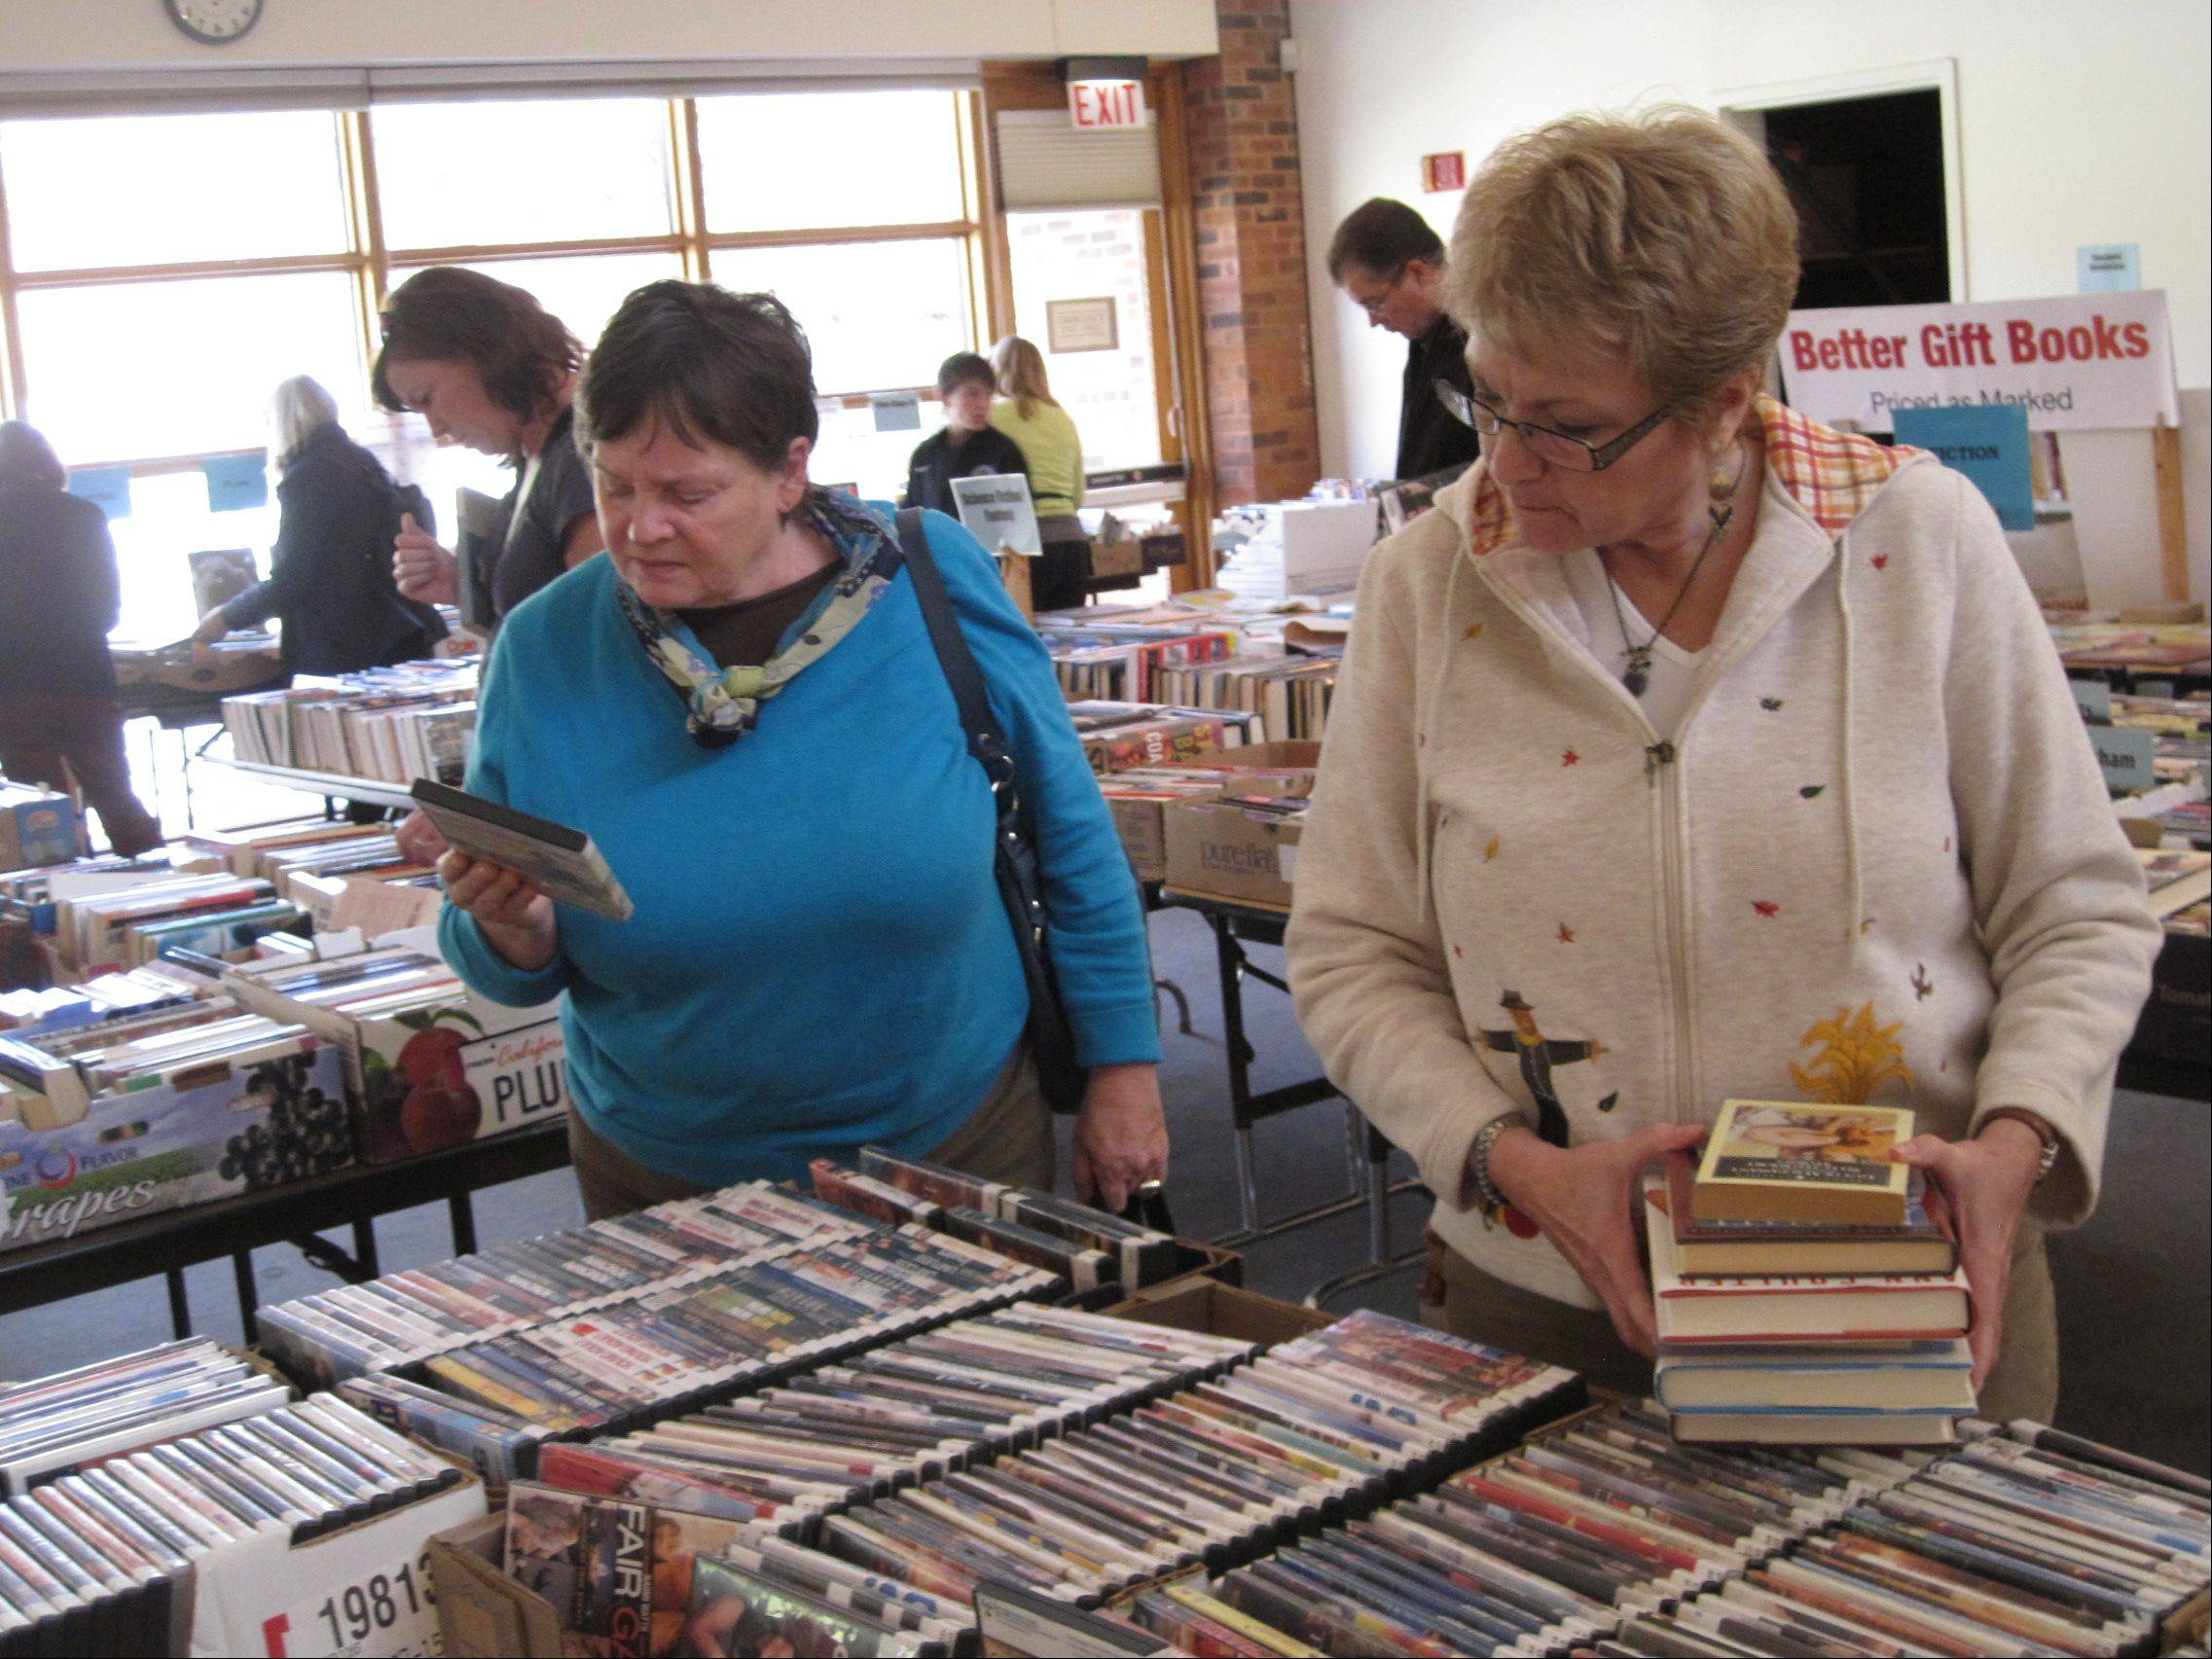 Sue Mertens, of St. Charles, right, attended the Friends of the Barrington Area Library book sale for the first time Saturday. She said she was impressed by how well organized it was.